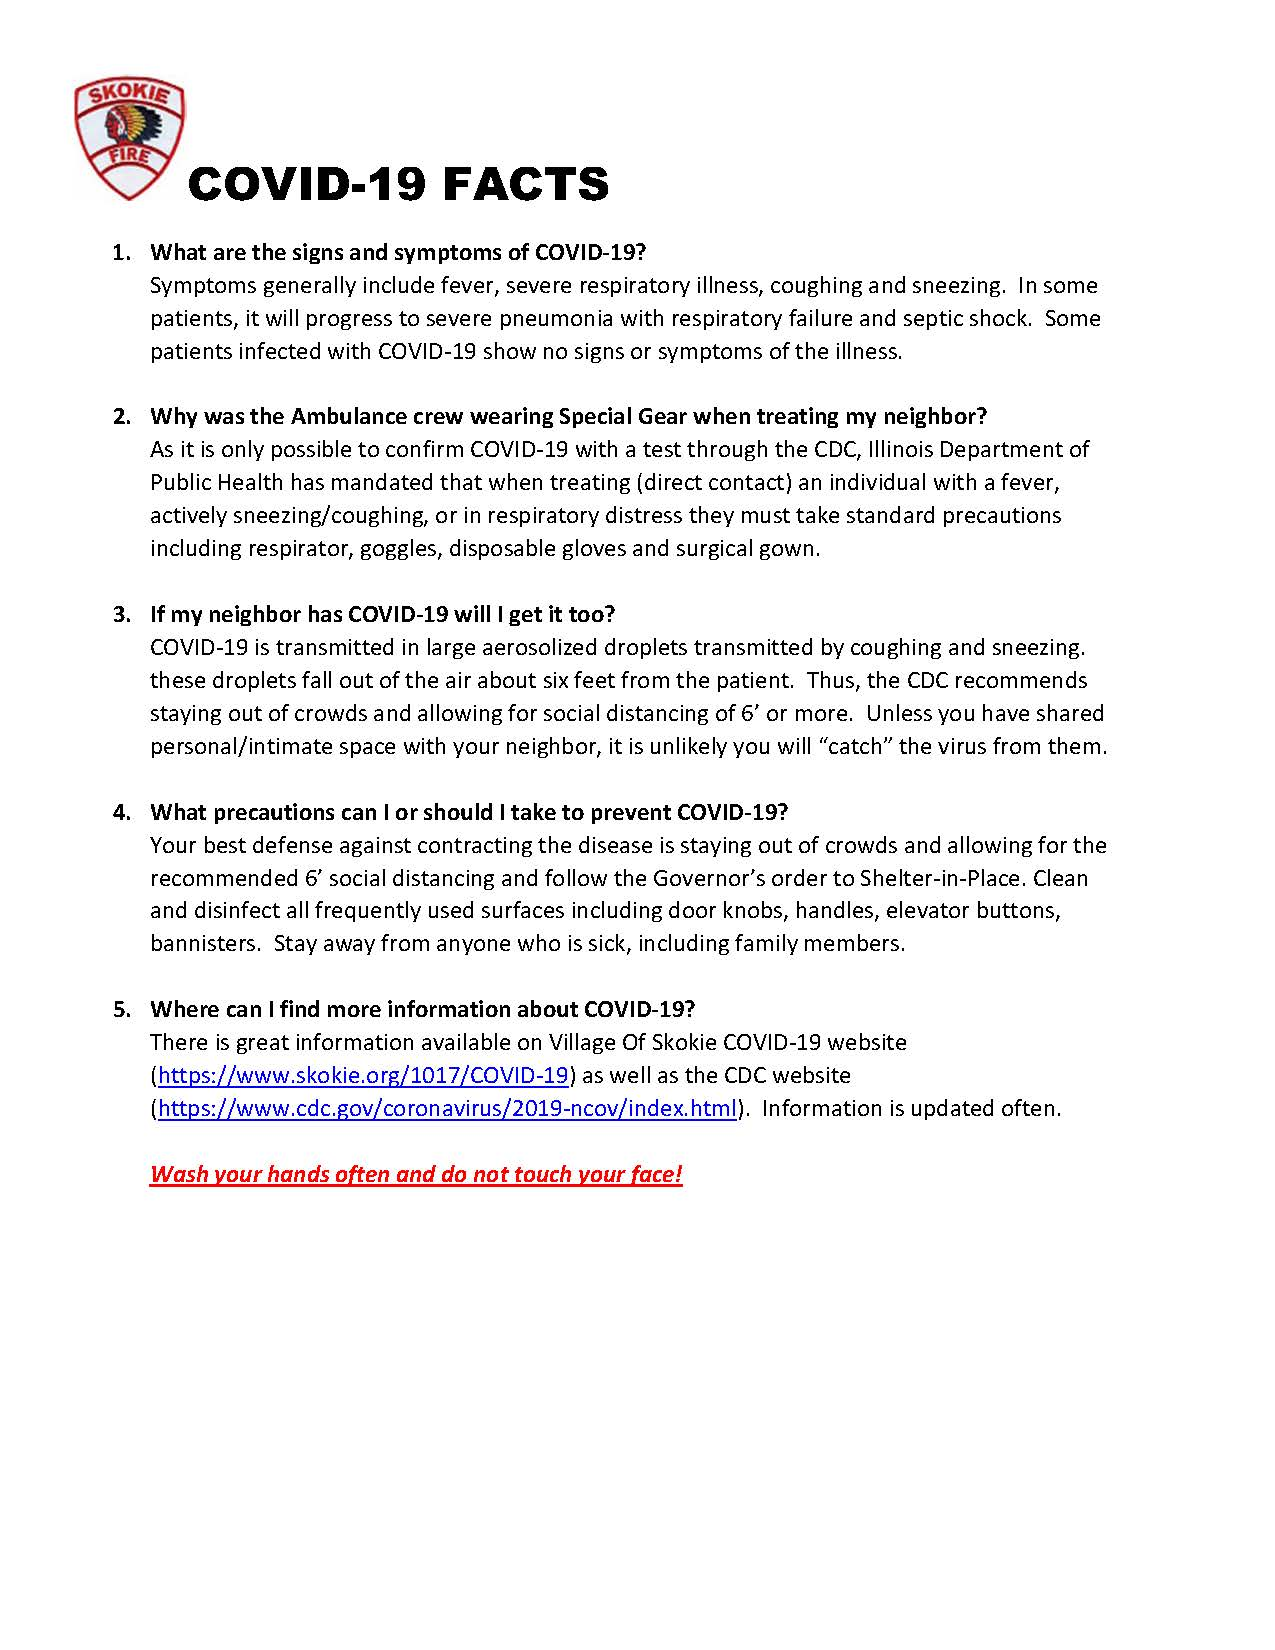 COVID-19 Fact Sheet Skokie Fire Department (JPG)